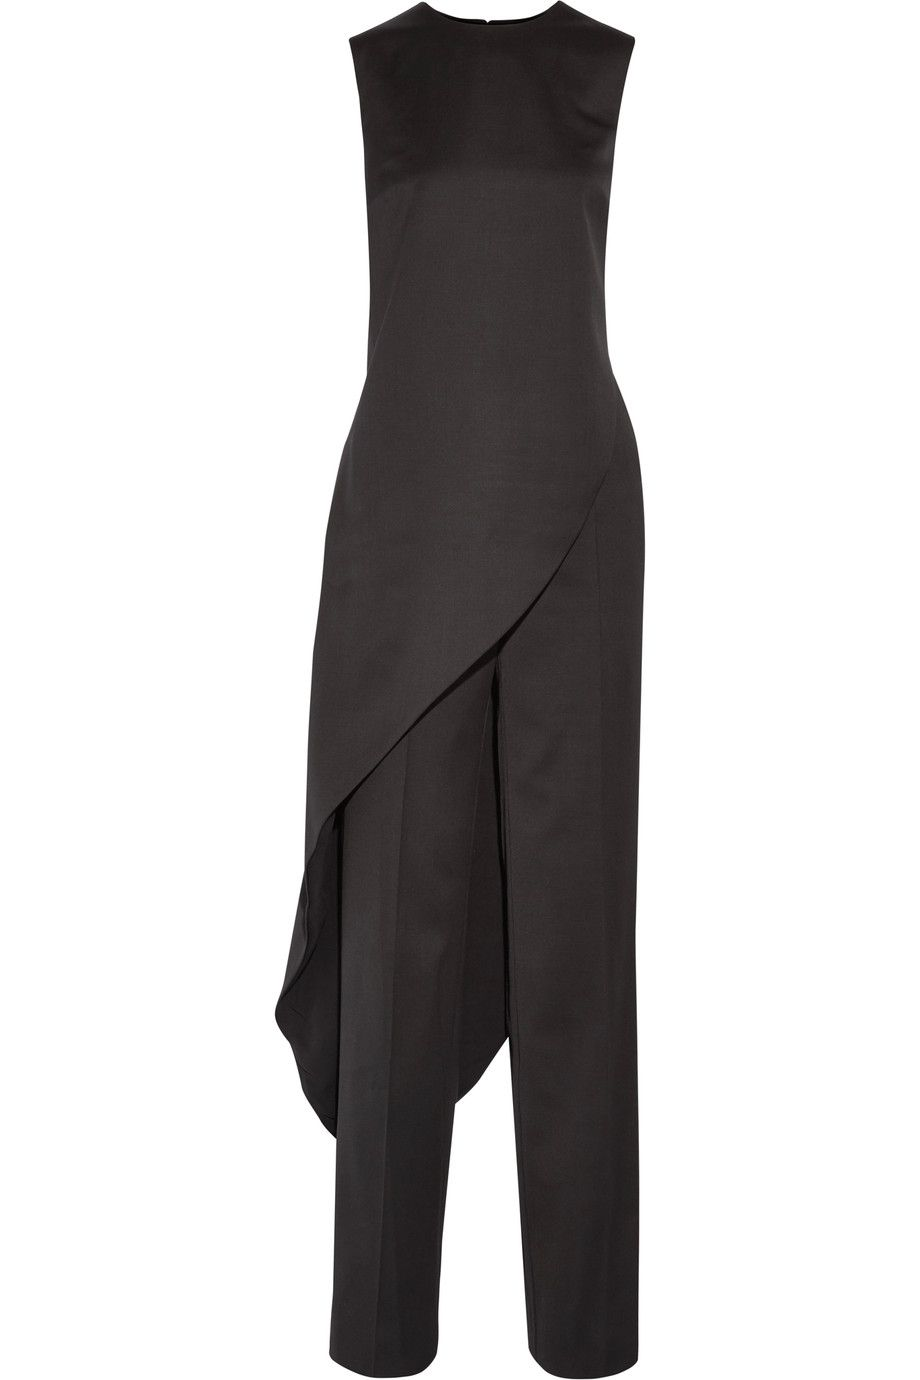 Shop on-sale Esteban Cortazar Asymmetric wool top and wide-leg pants.  Browse other discount designer Jumpsuits & more on The Most Fashionable  Fashion Outlet ...